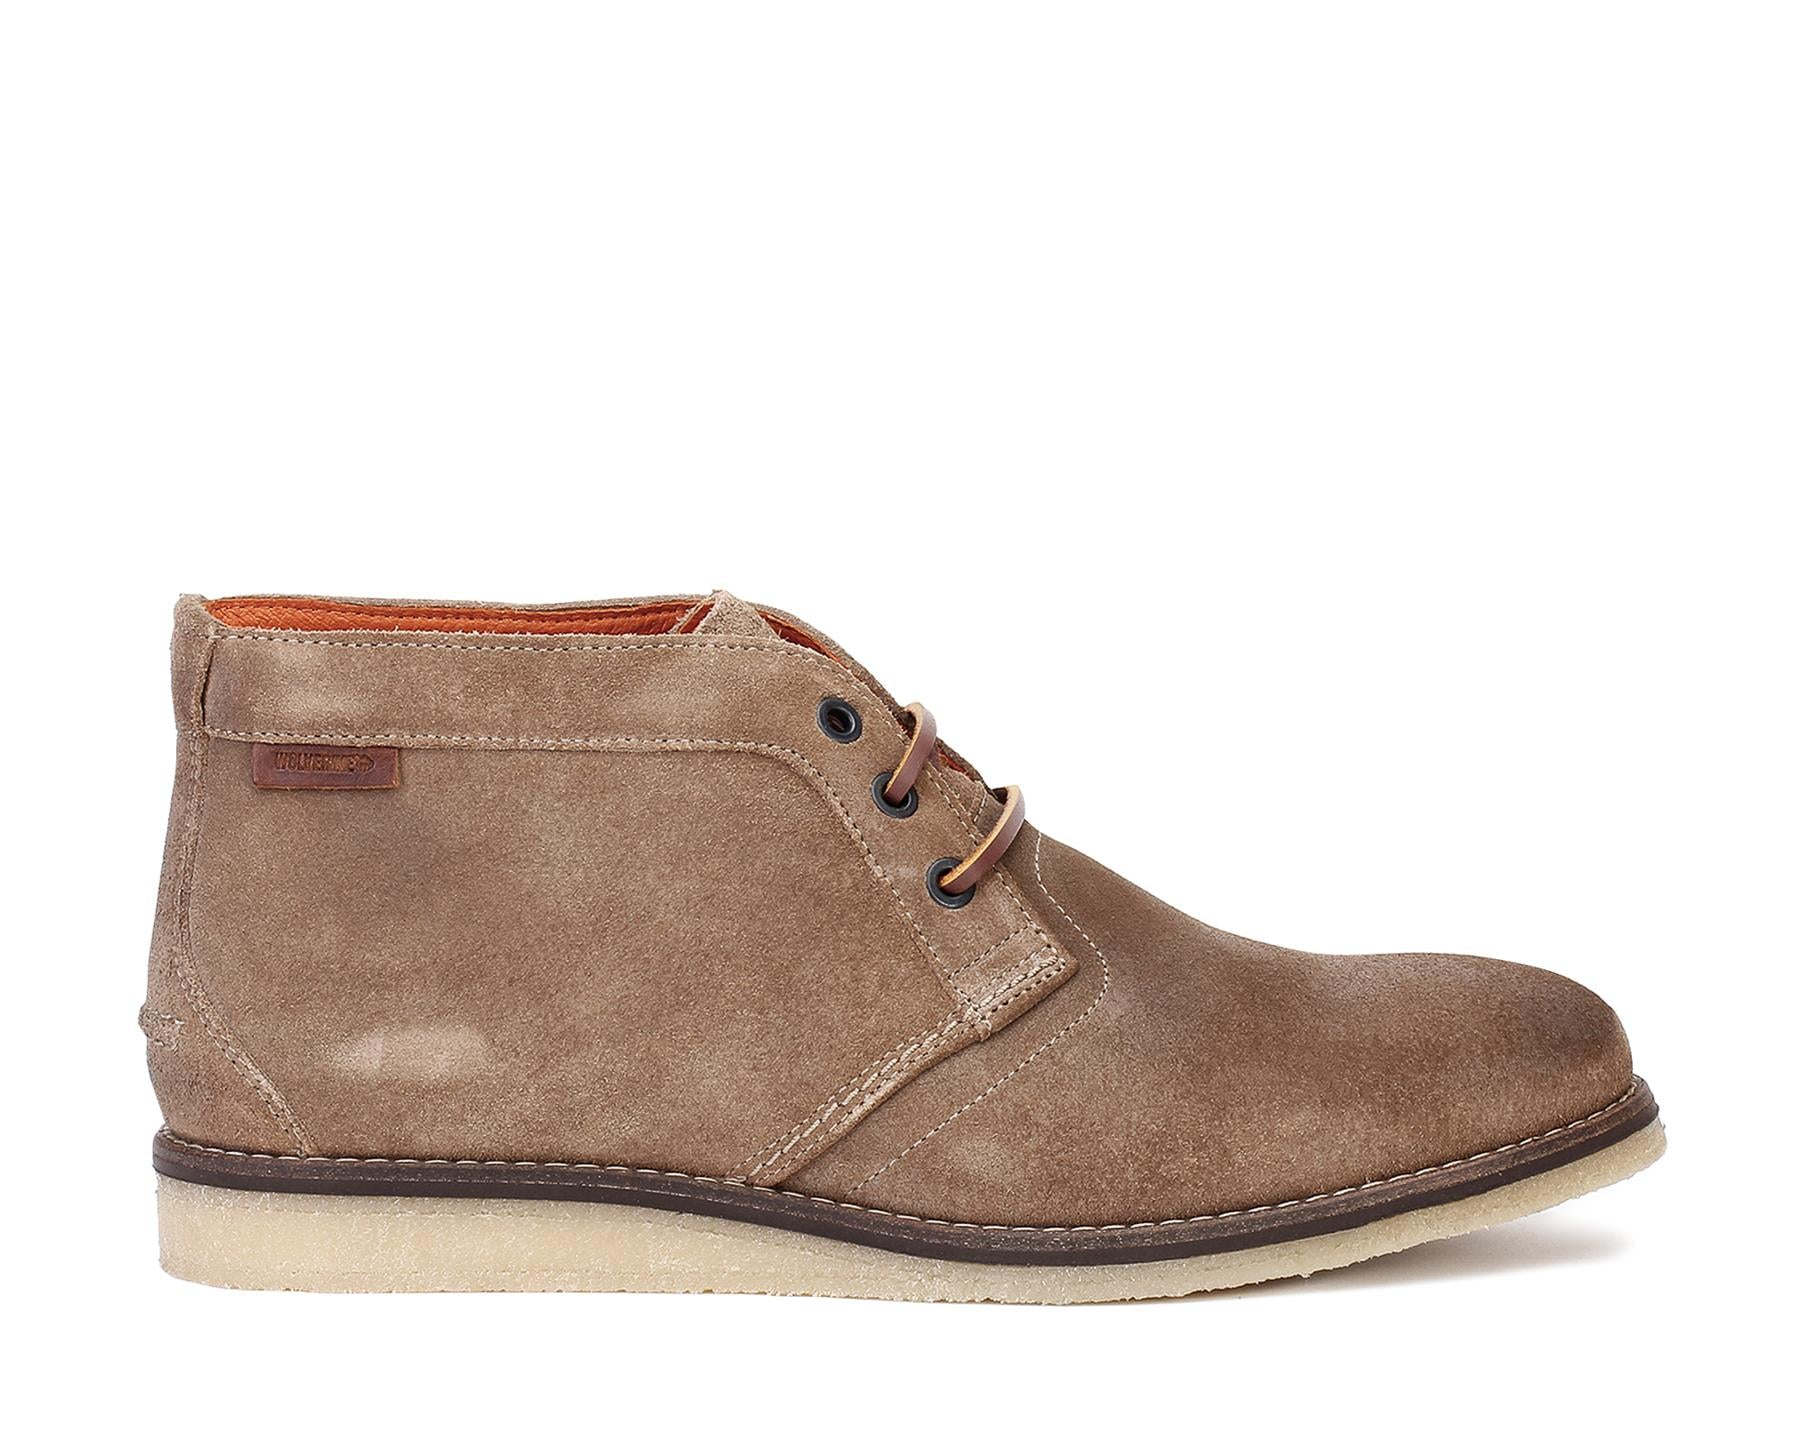 wolverine-mens-chukka-boots-julian-crepe-taupe-w00652-main